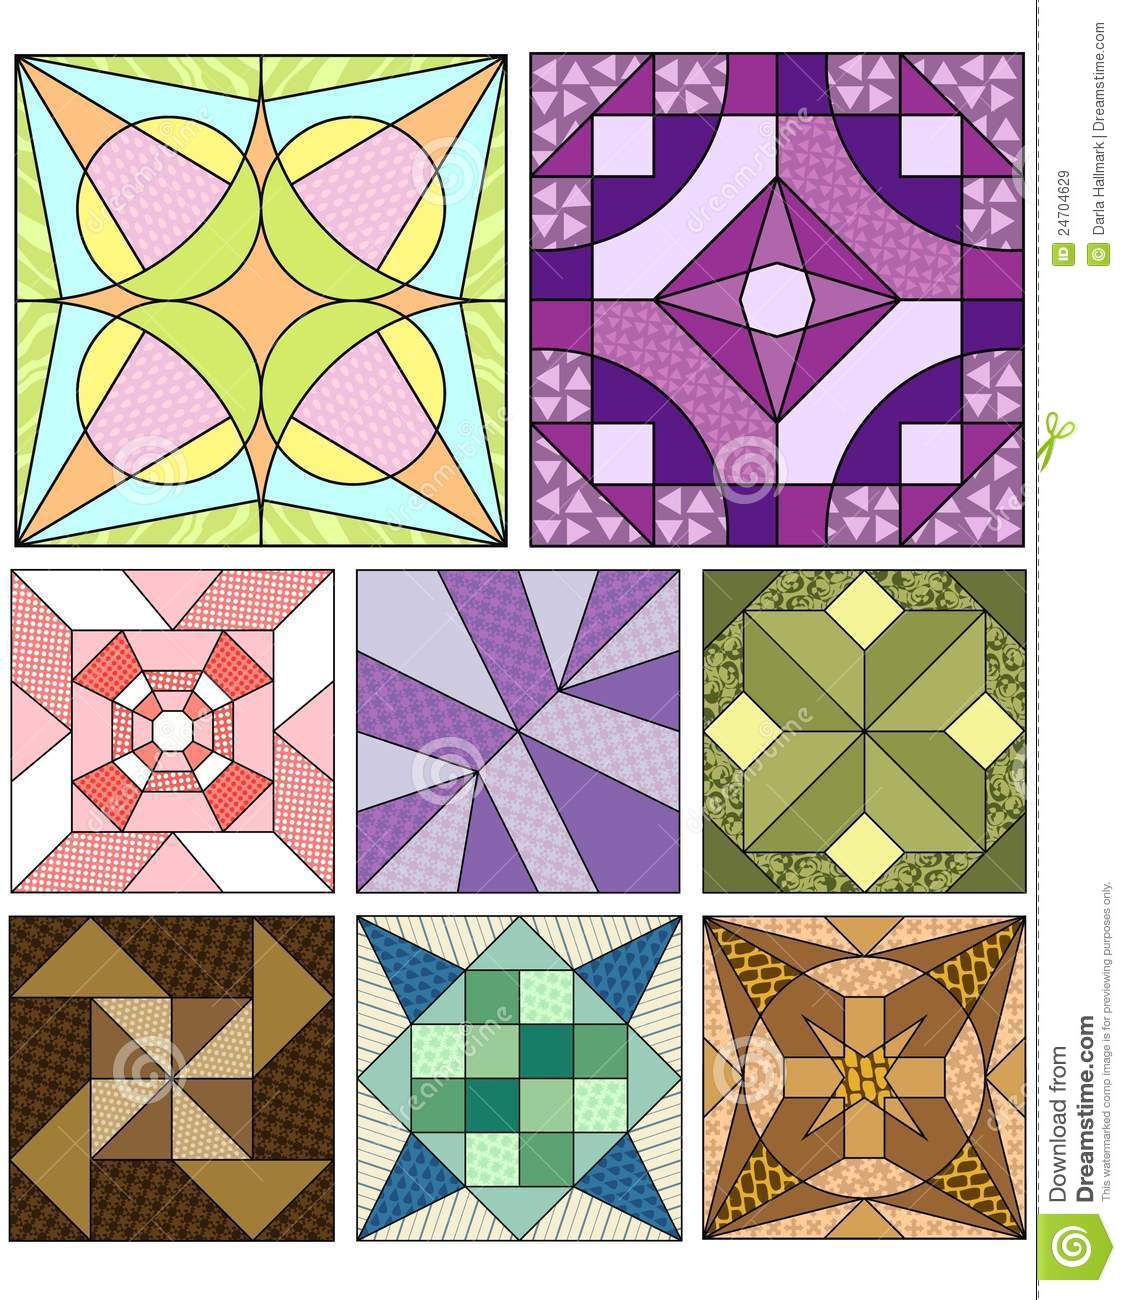 Free Traditional Quilting Patterns : Traditional Quilting Patterns Royalty Free Stock Images - Image: 24704629